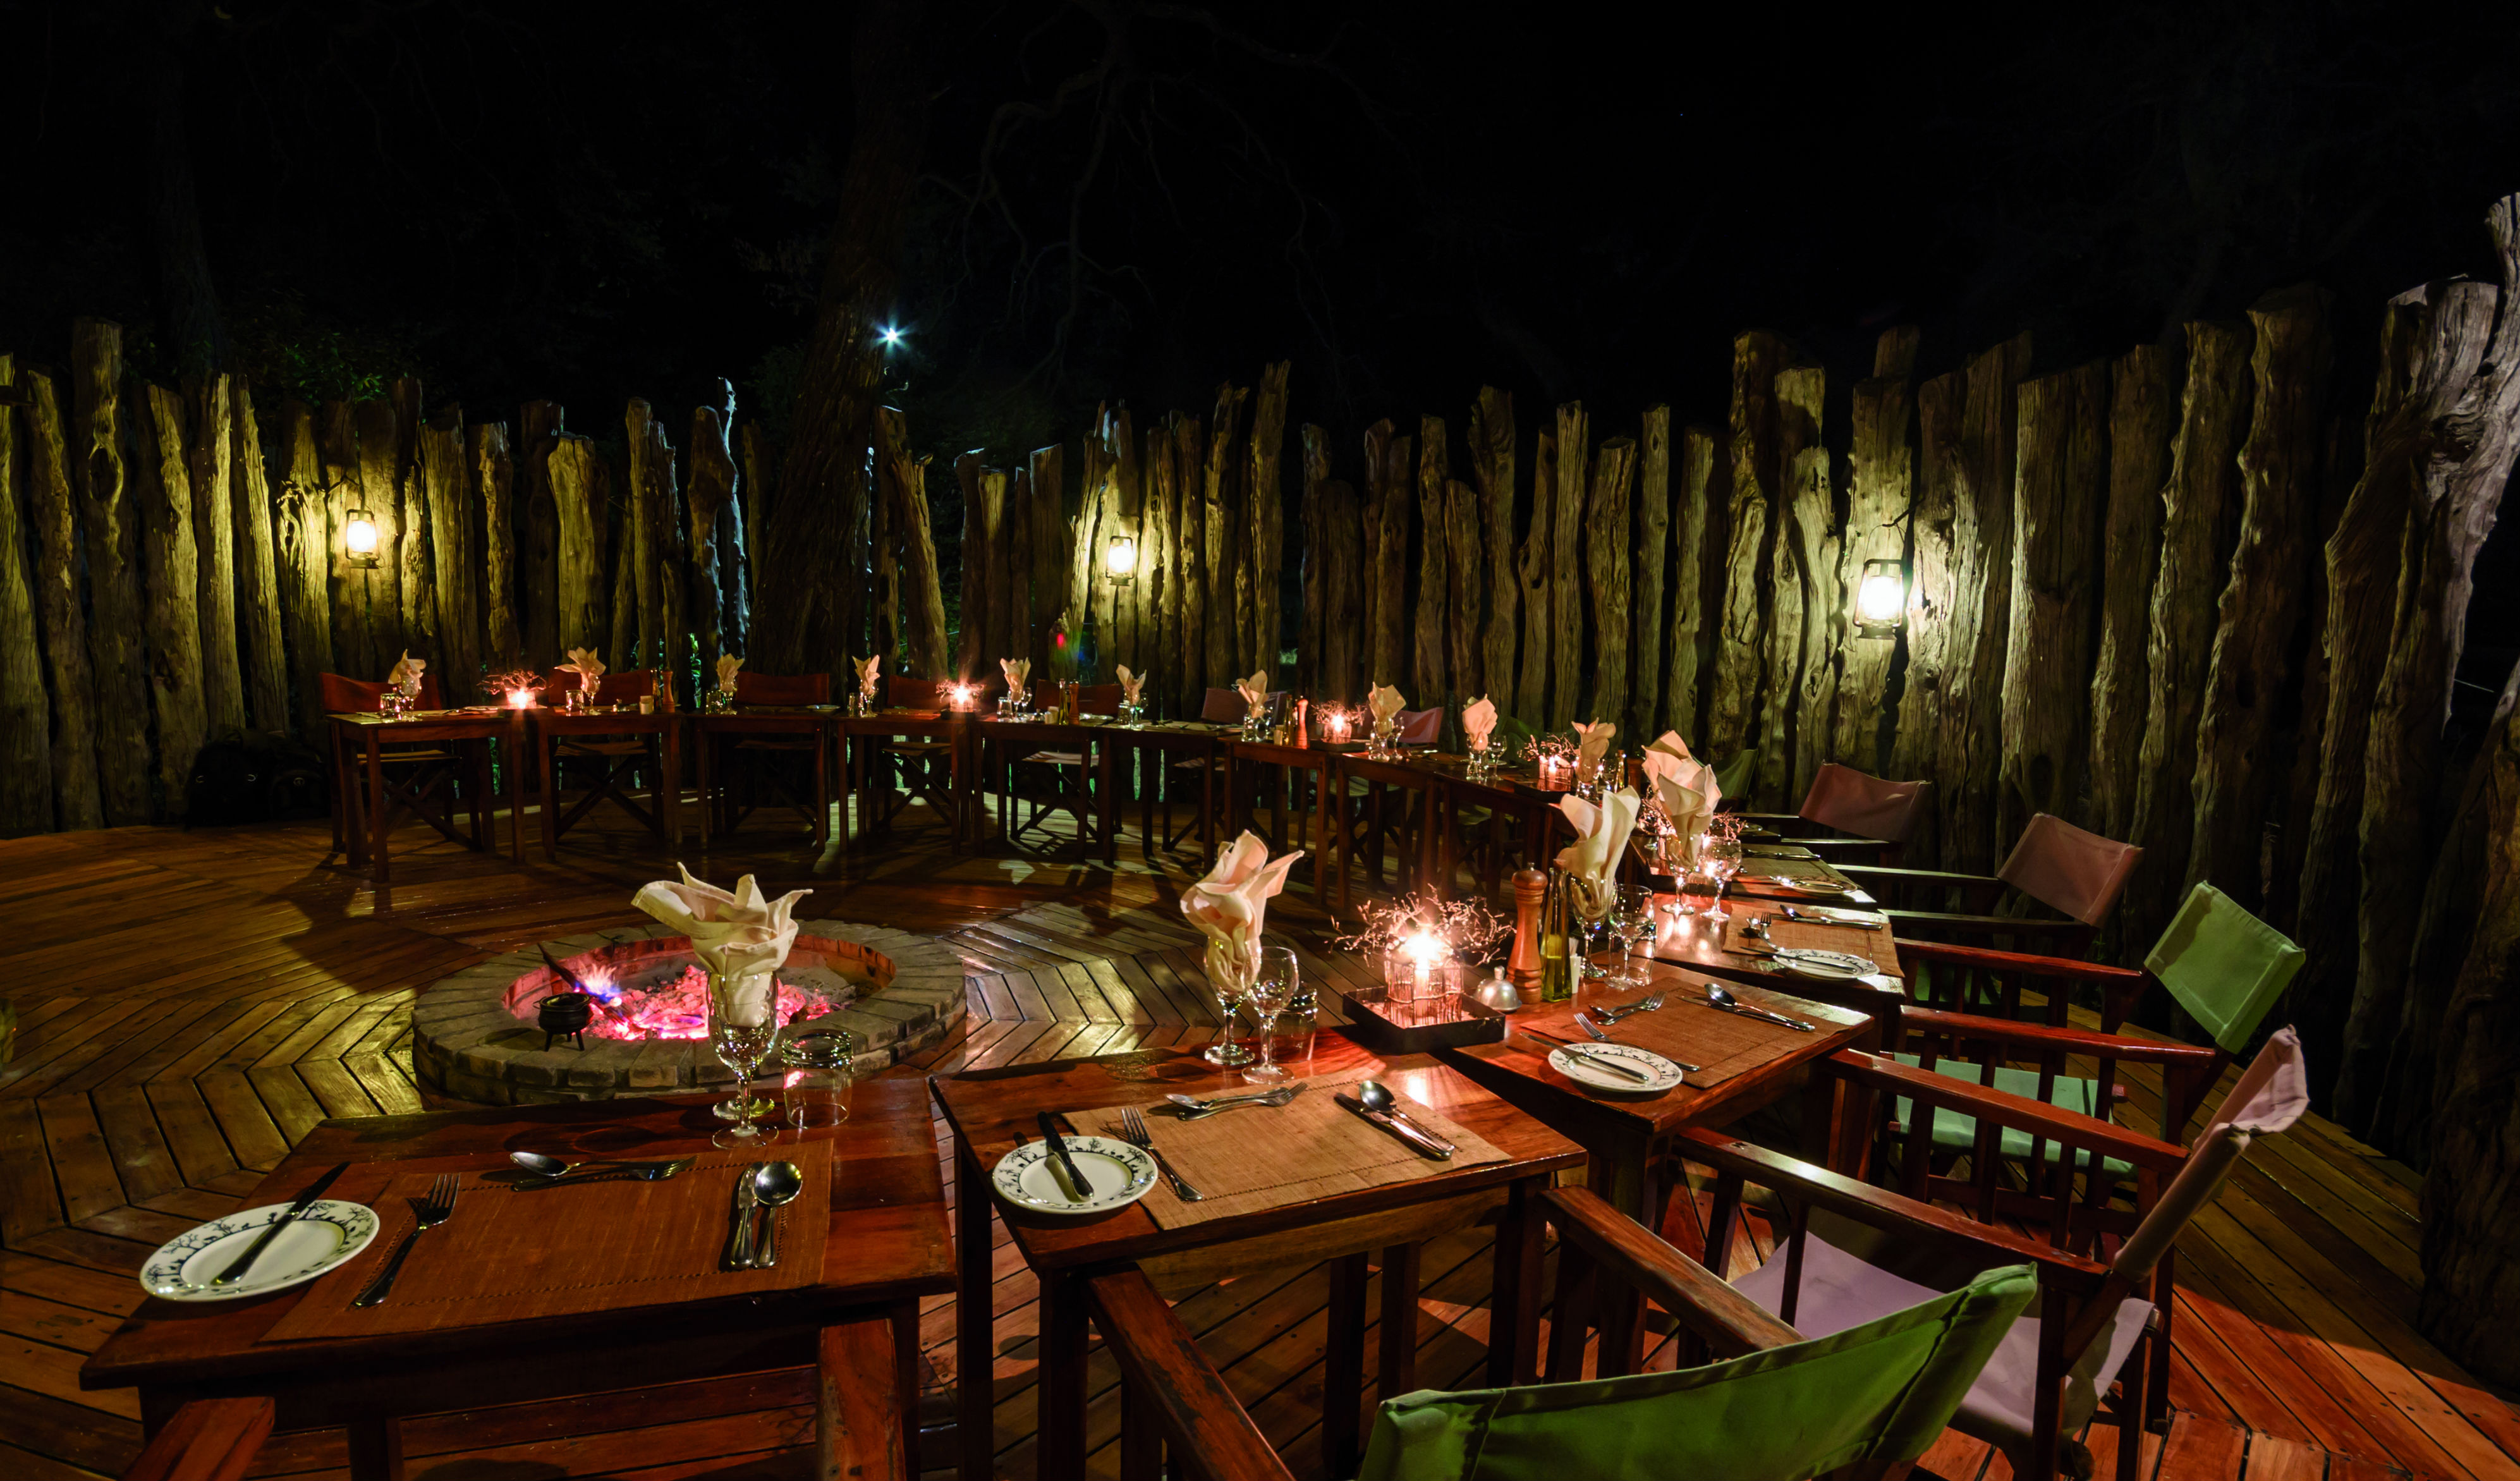 Dine under the stars on the Boma